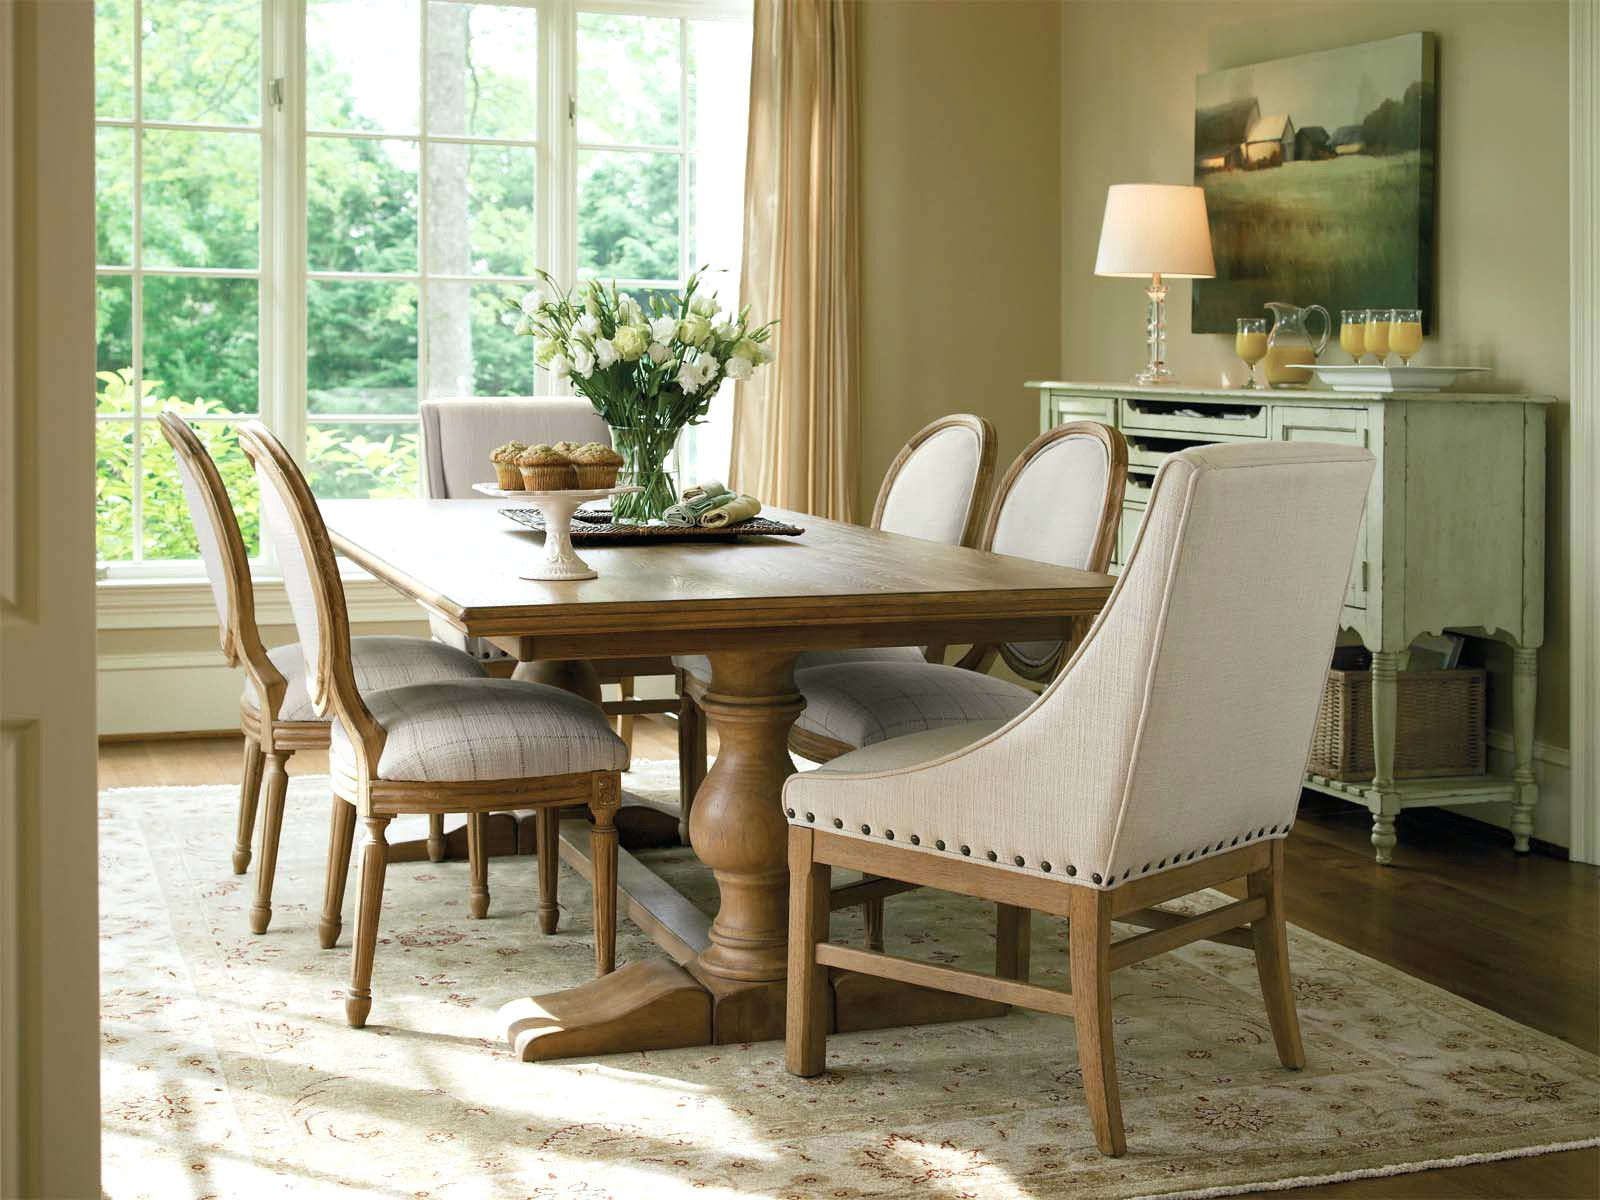 Room French Country Dining Table With Bench